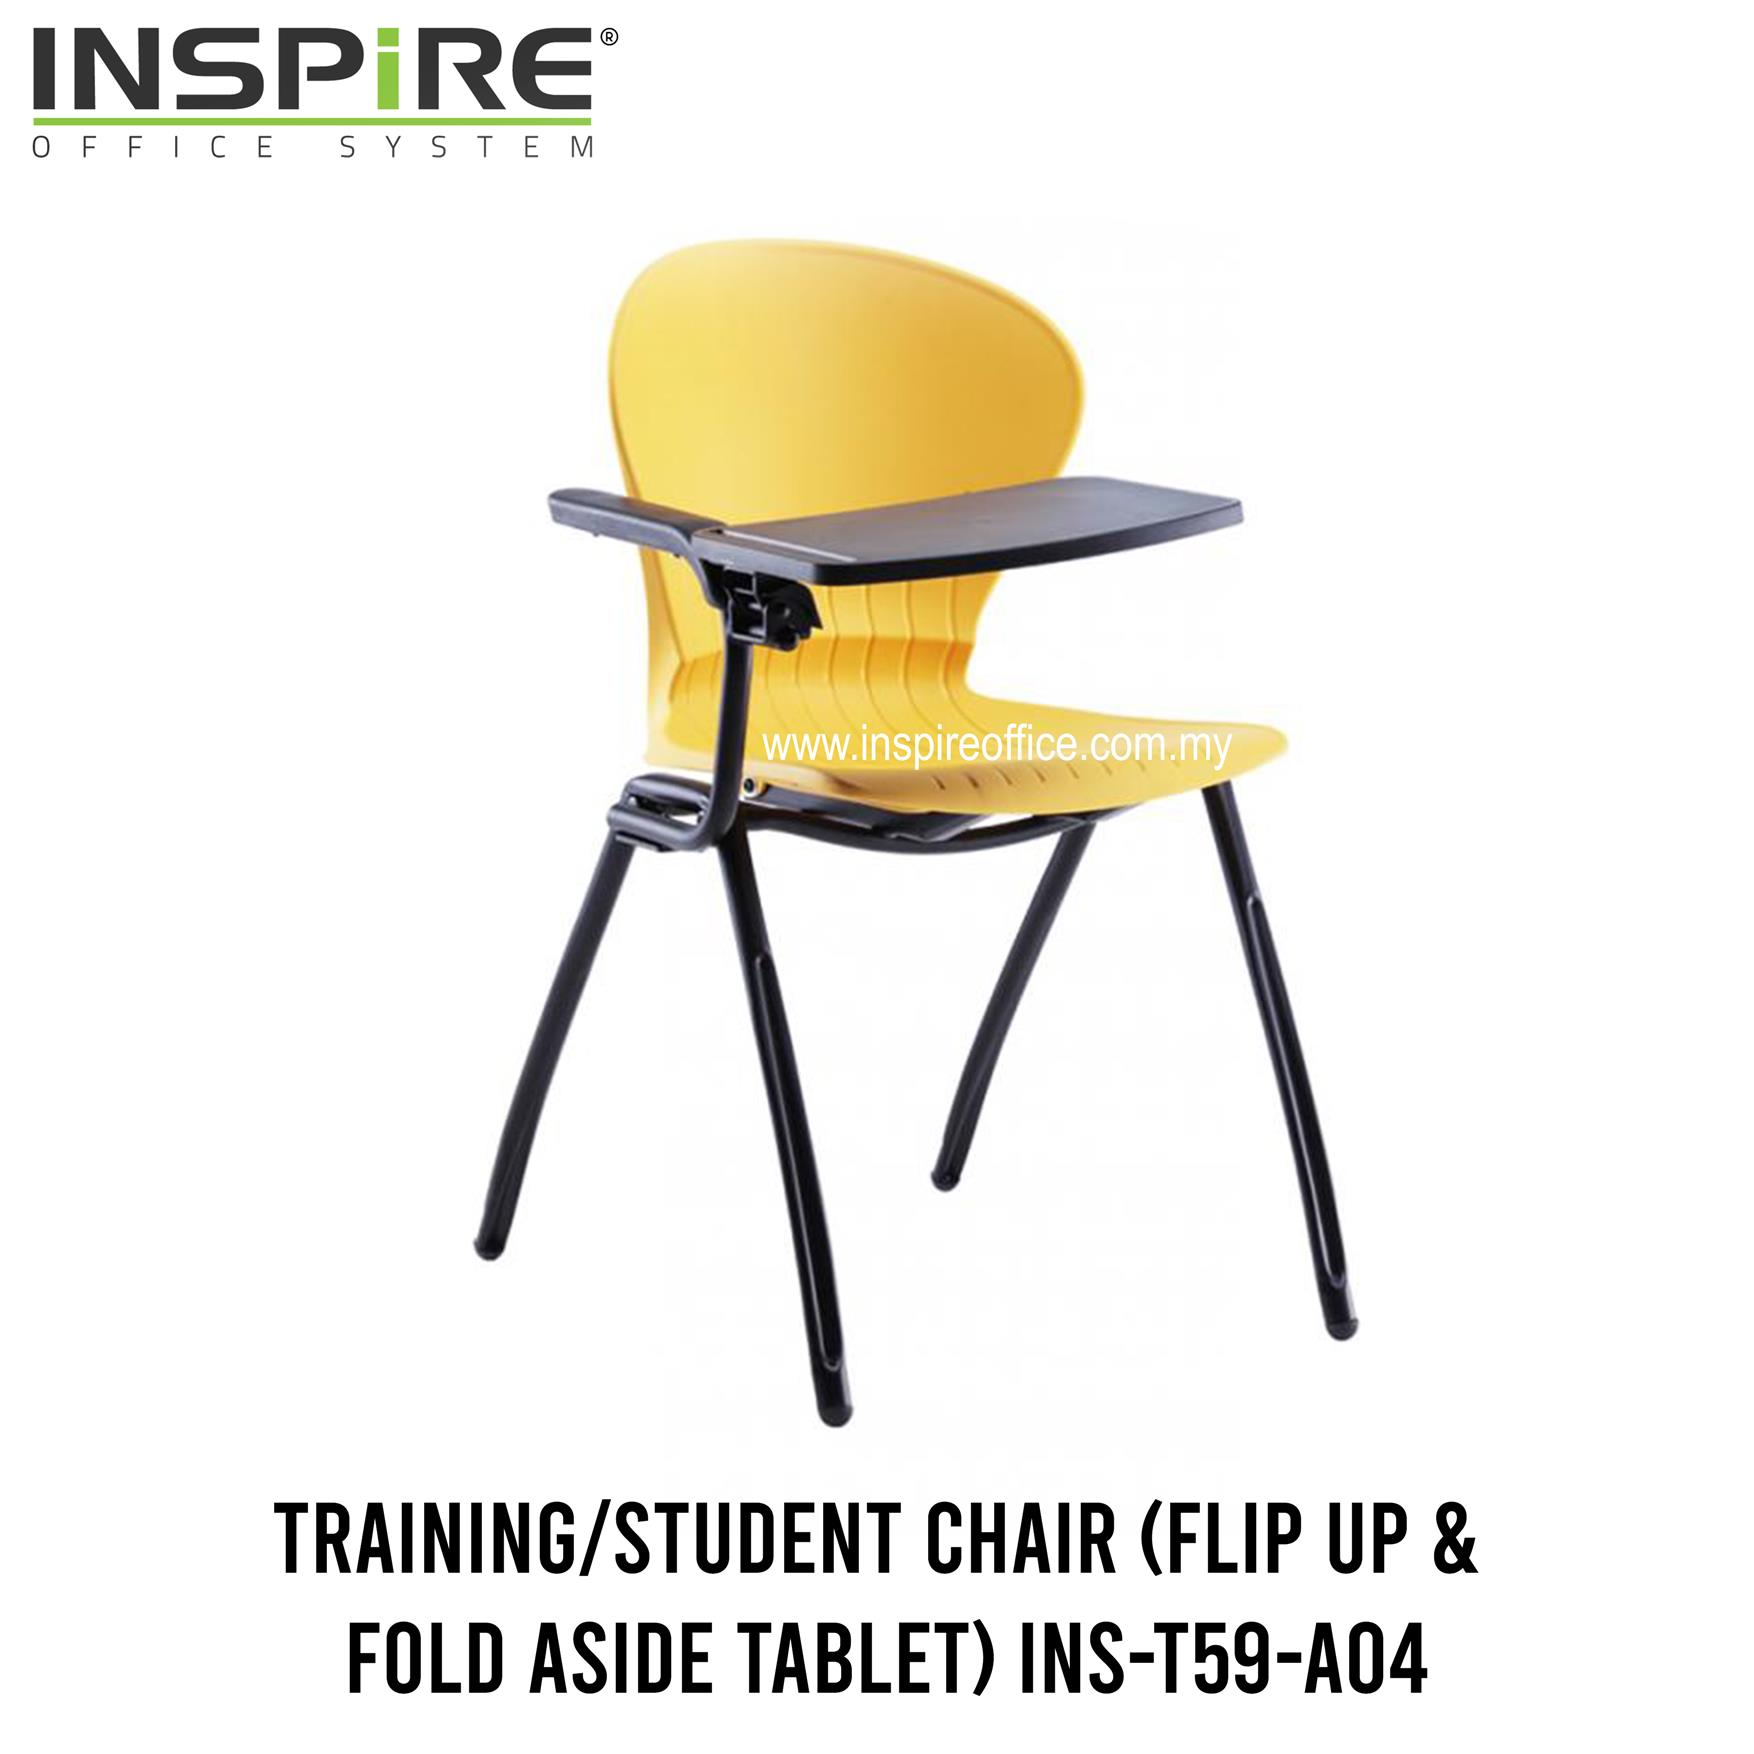 INS-T59-A04 Student Chair (Flip Up & Fold Aside Tablet)